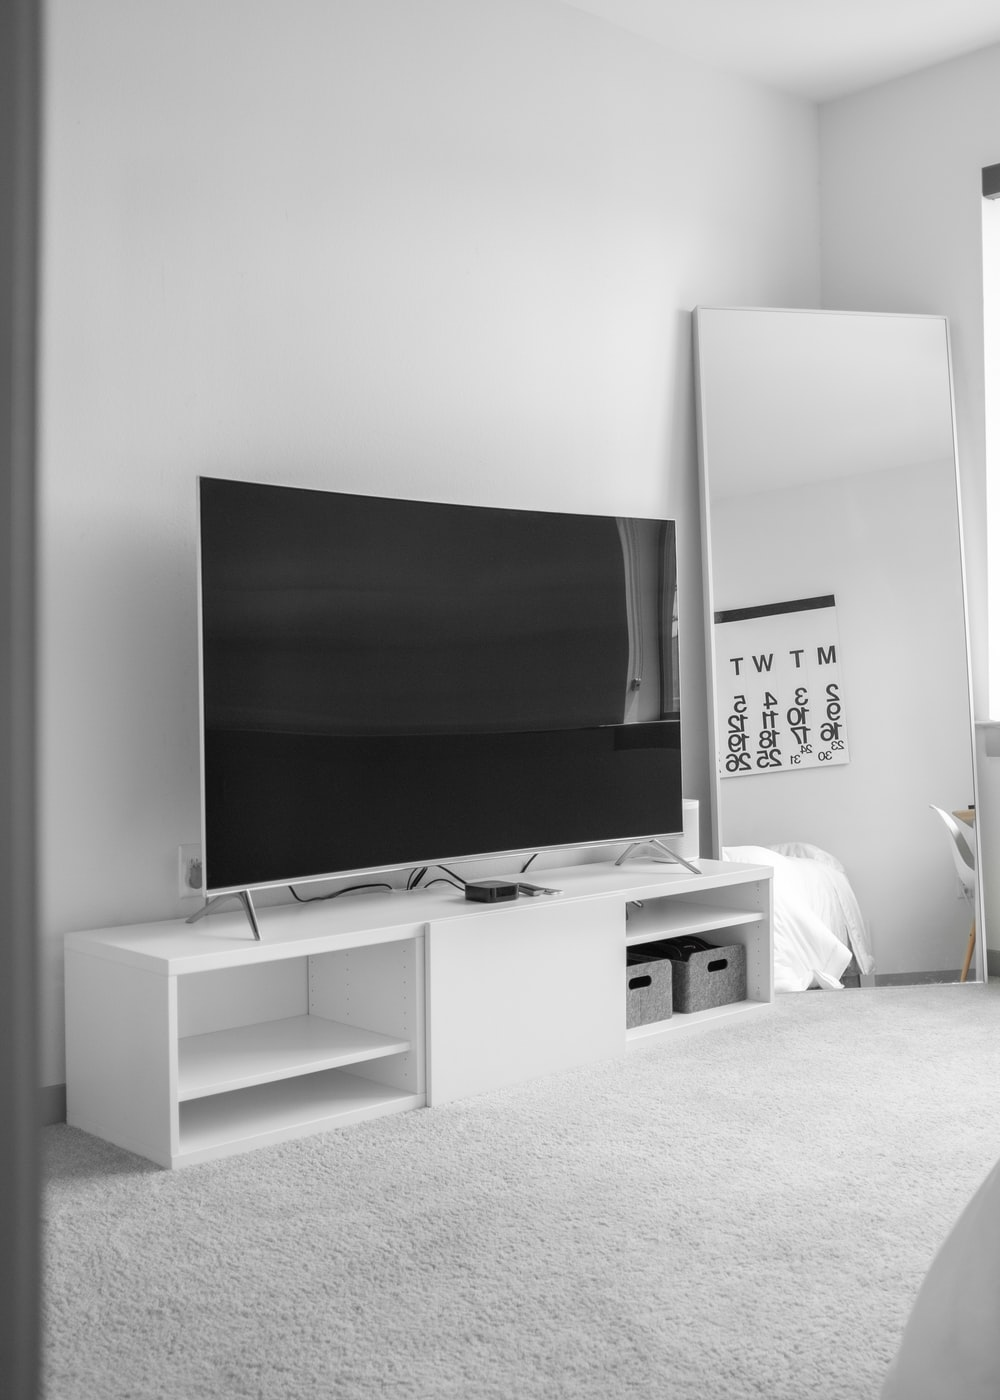 27 Television Pictures Download Free Images On Unsplash